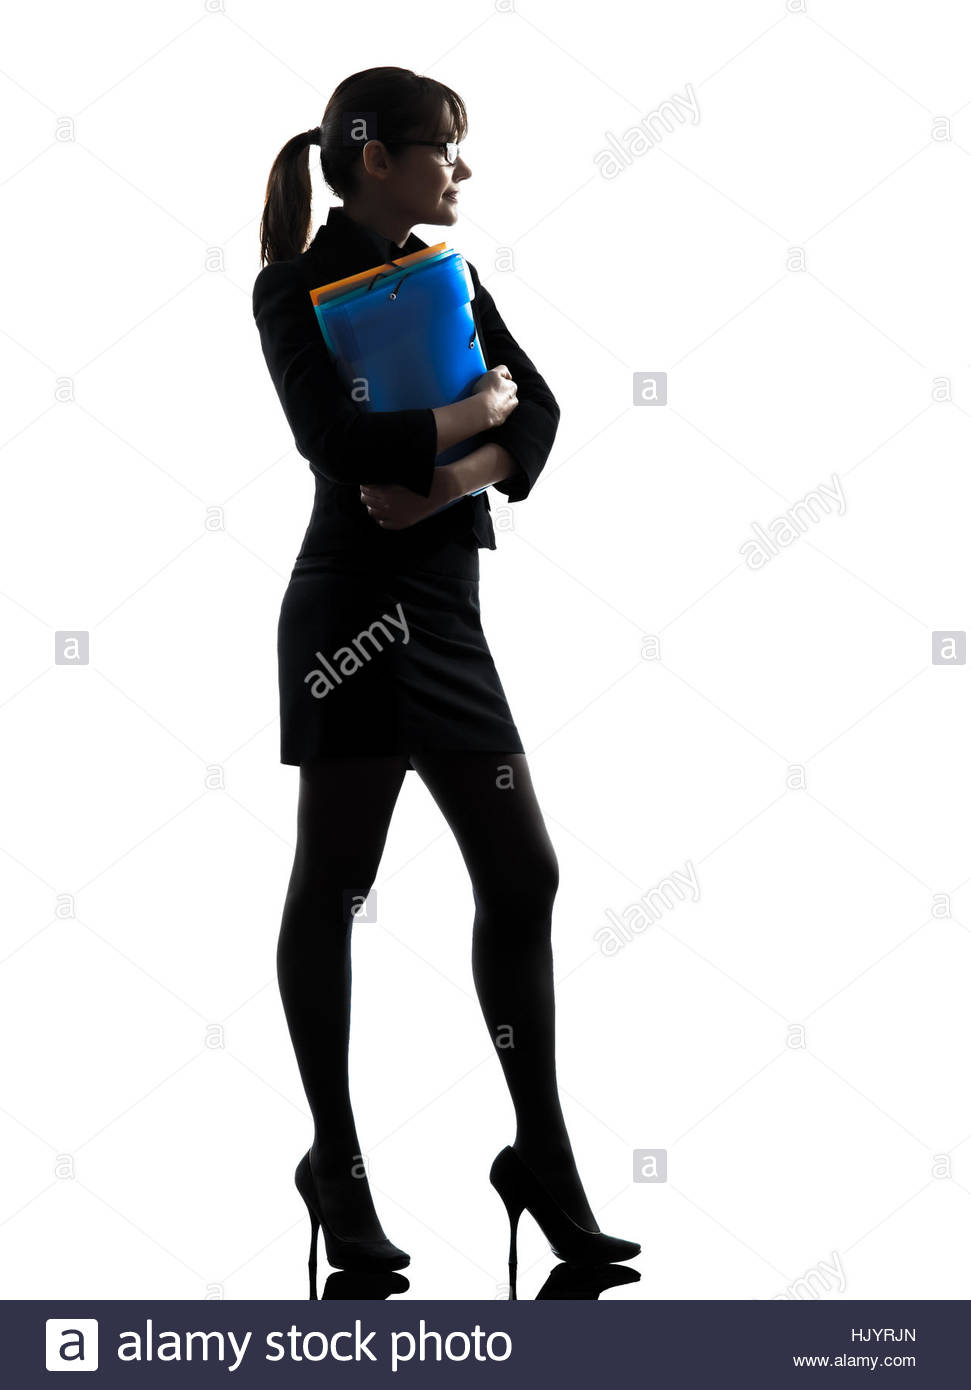 971x1390 One Business Woman Hold G Folders Files Stand G Silhouette Studio